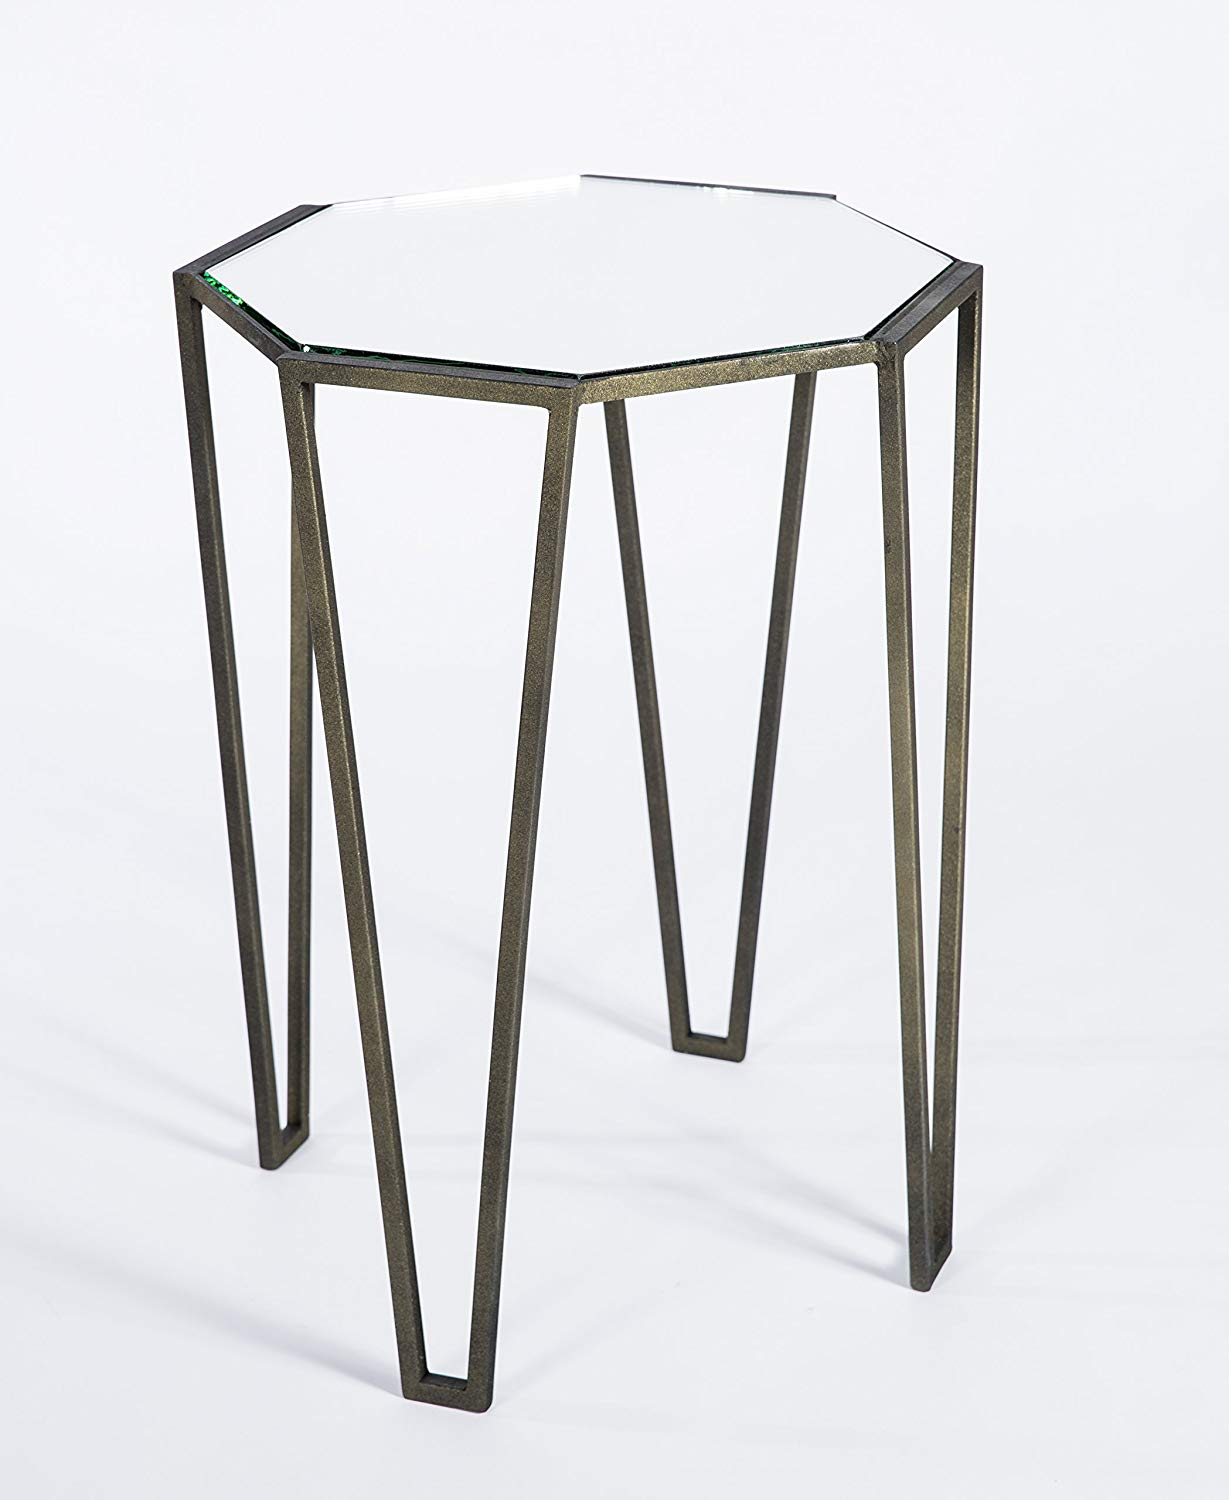 knox and harrison pointed leg occasional accent table antique bronze with mirrored top kitchen dining glass bedside lockers room plans wood console cabinet fur furniture mahogany